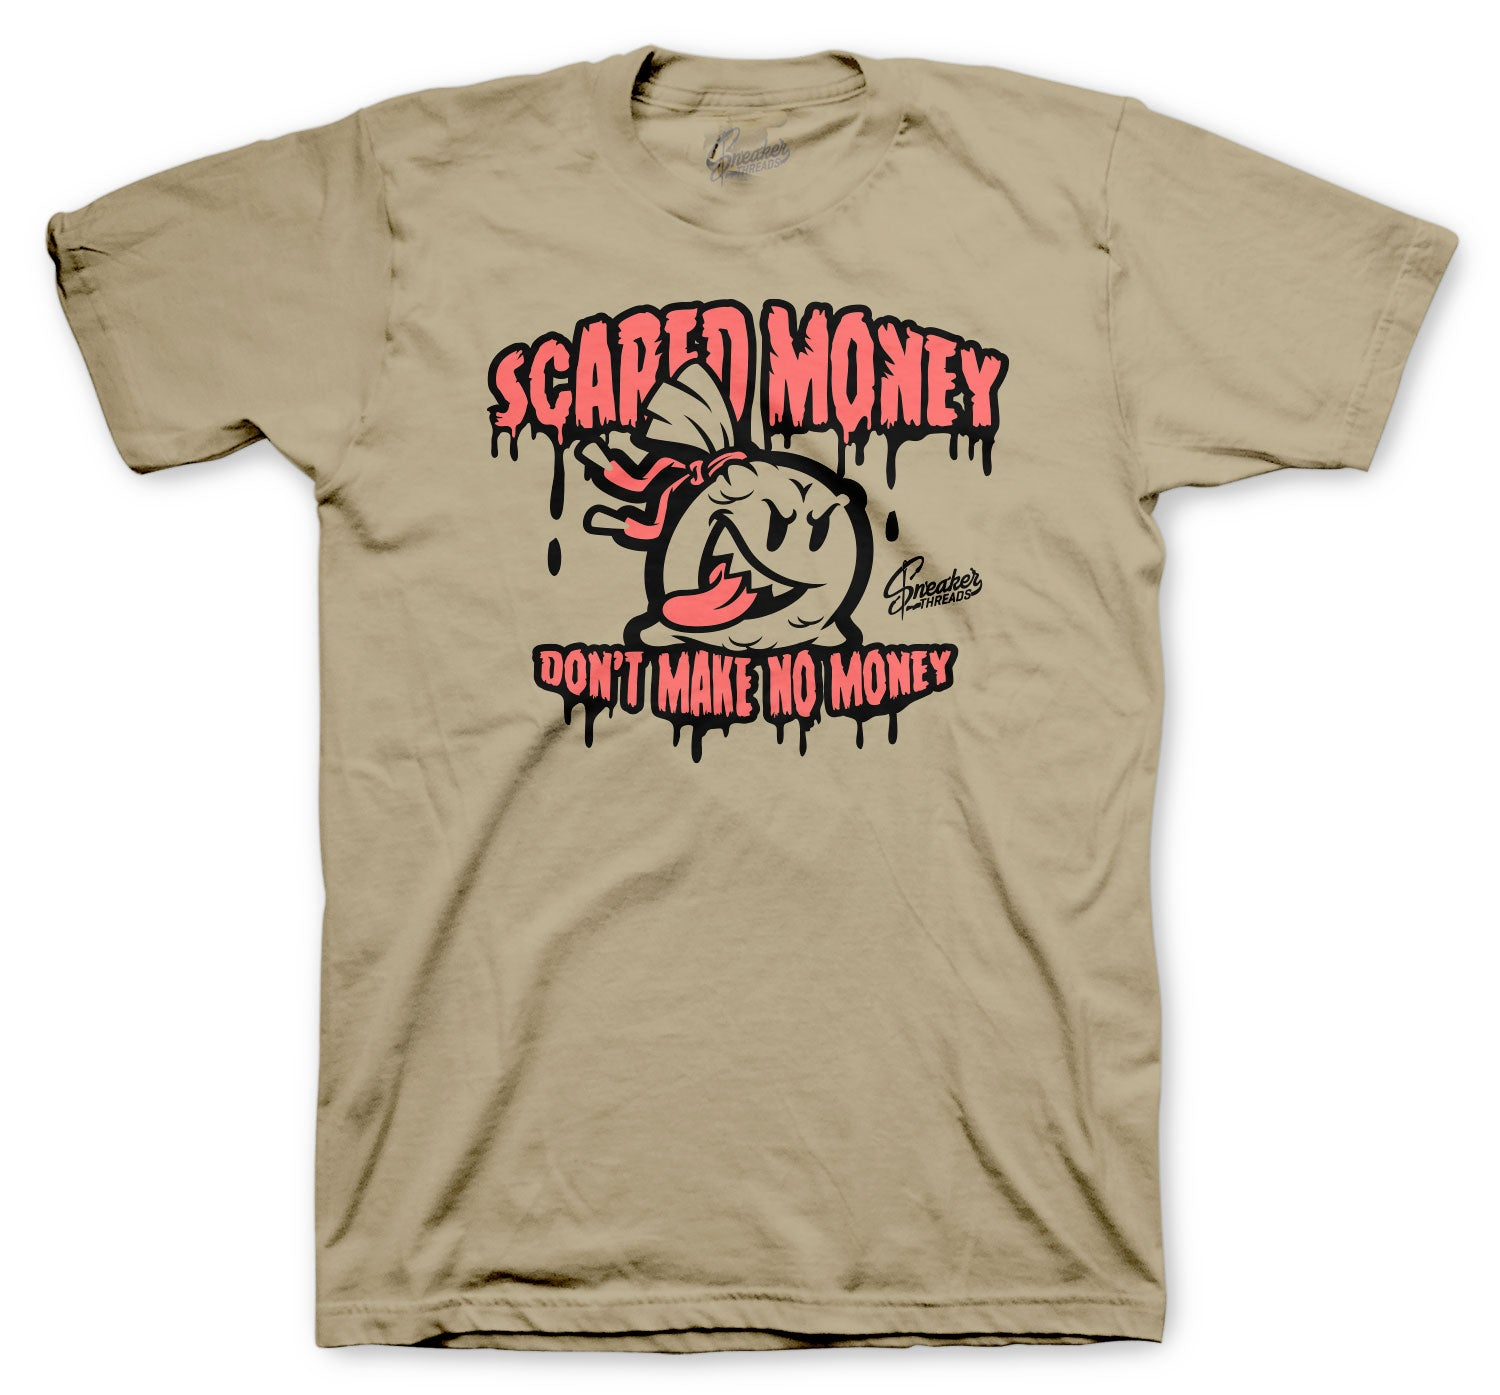 Yeezy Sand Taupe 350 Shirt - Scared Money - Tan